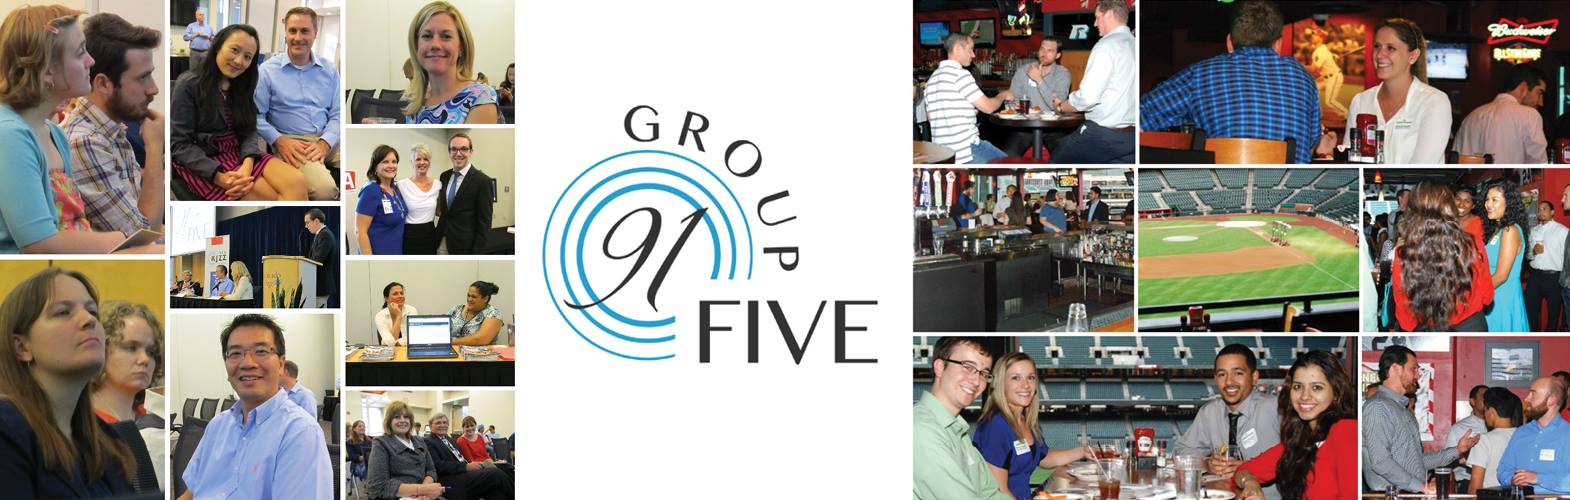 Group 91.Five